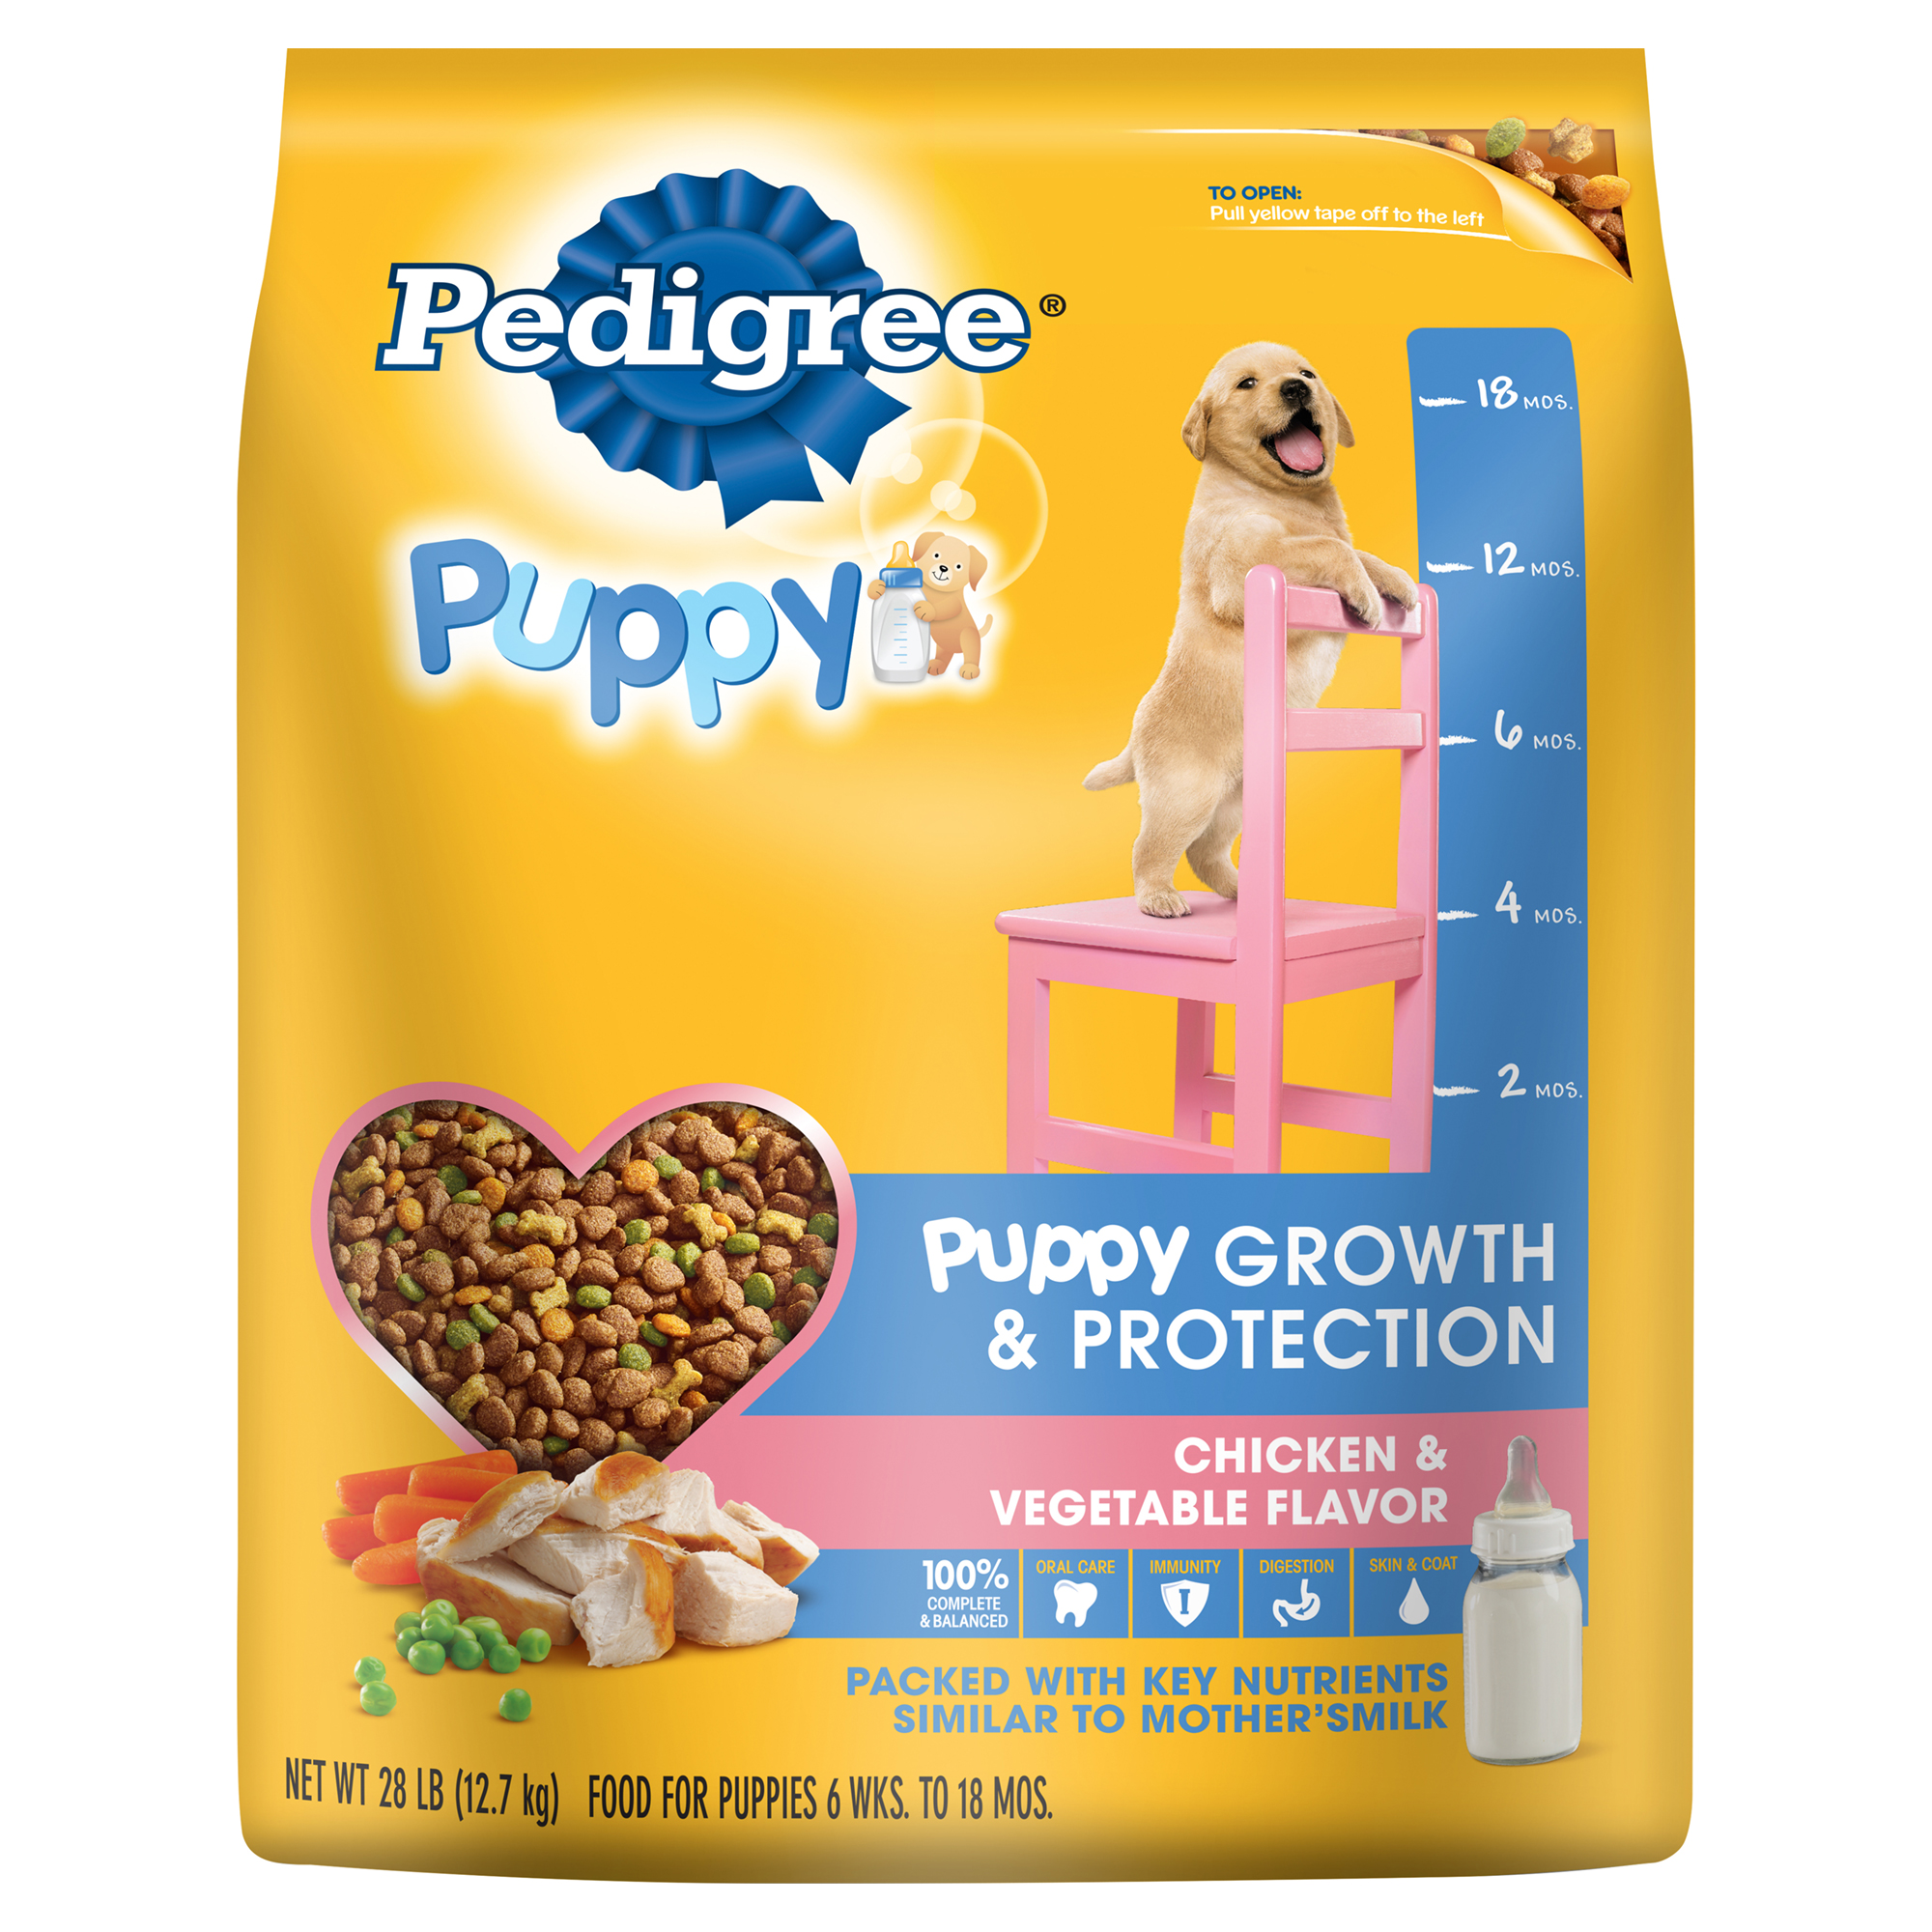 PEDIGREE Puppy Growth and Protection Chicken & Vegetable Flavor Dry Dog Food 28 Pounds